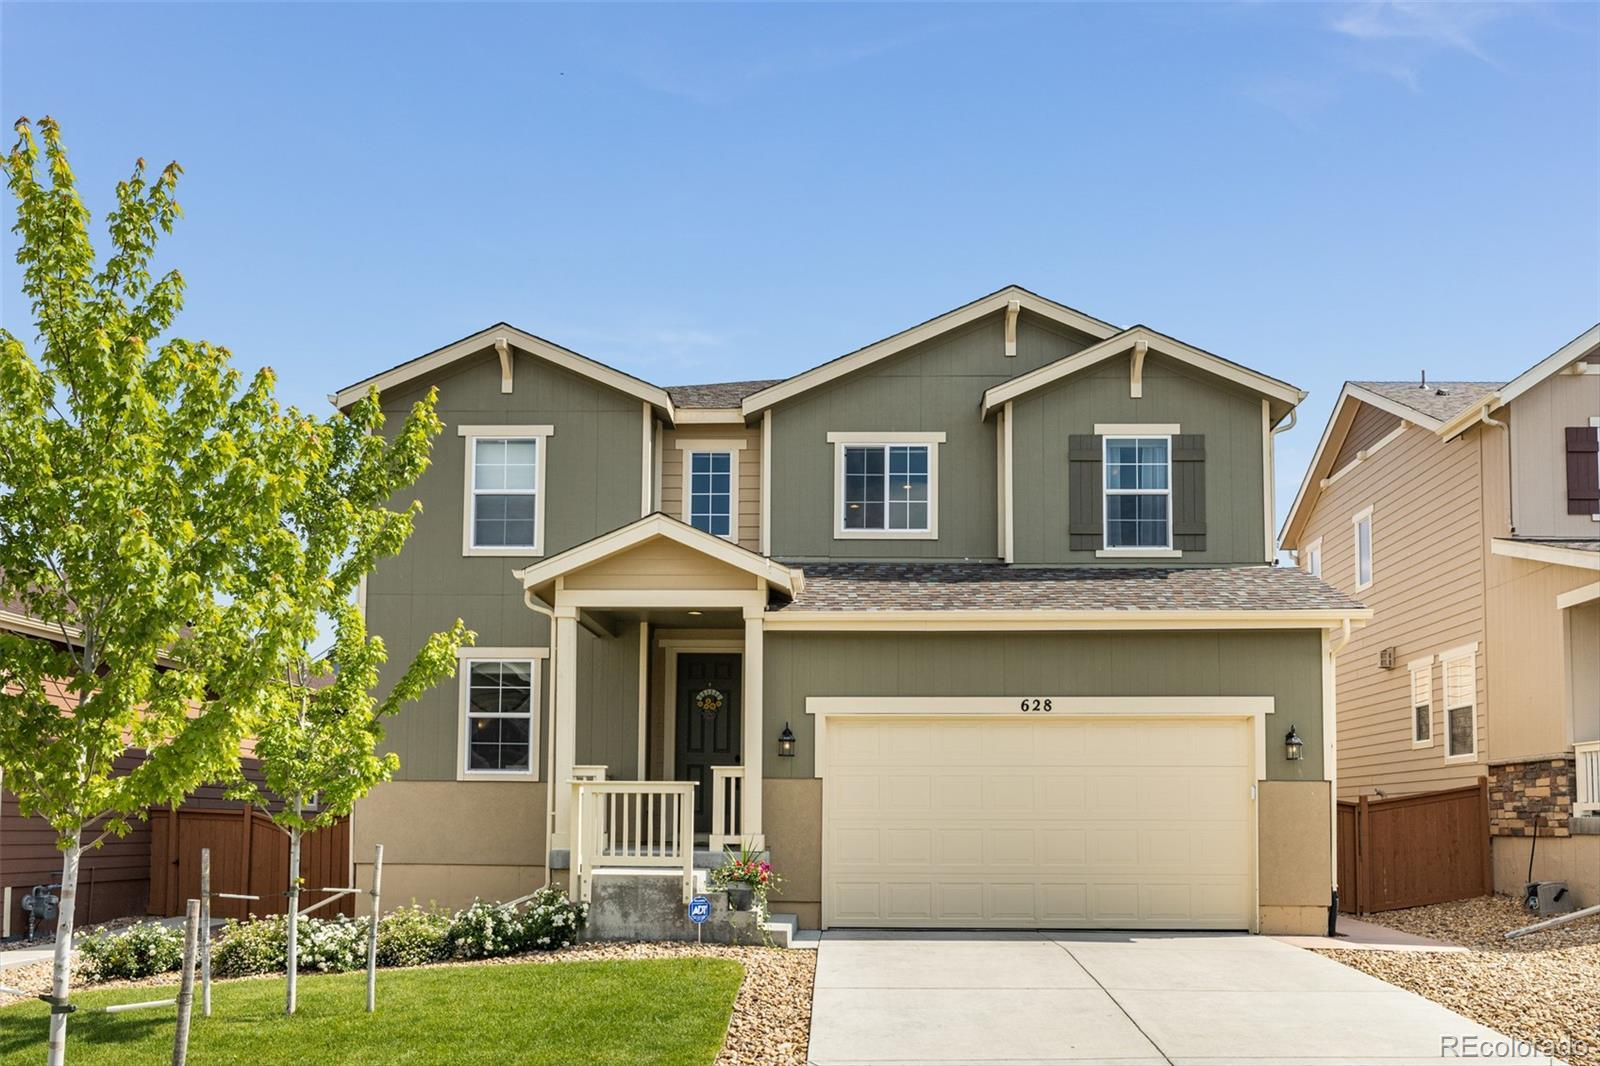 628 W 171st Place, Broomfield, CO 80023 - #: 6688226